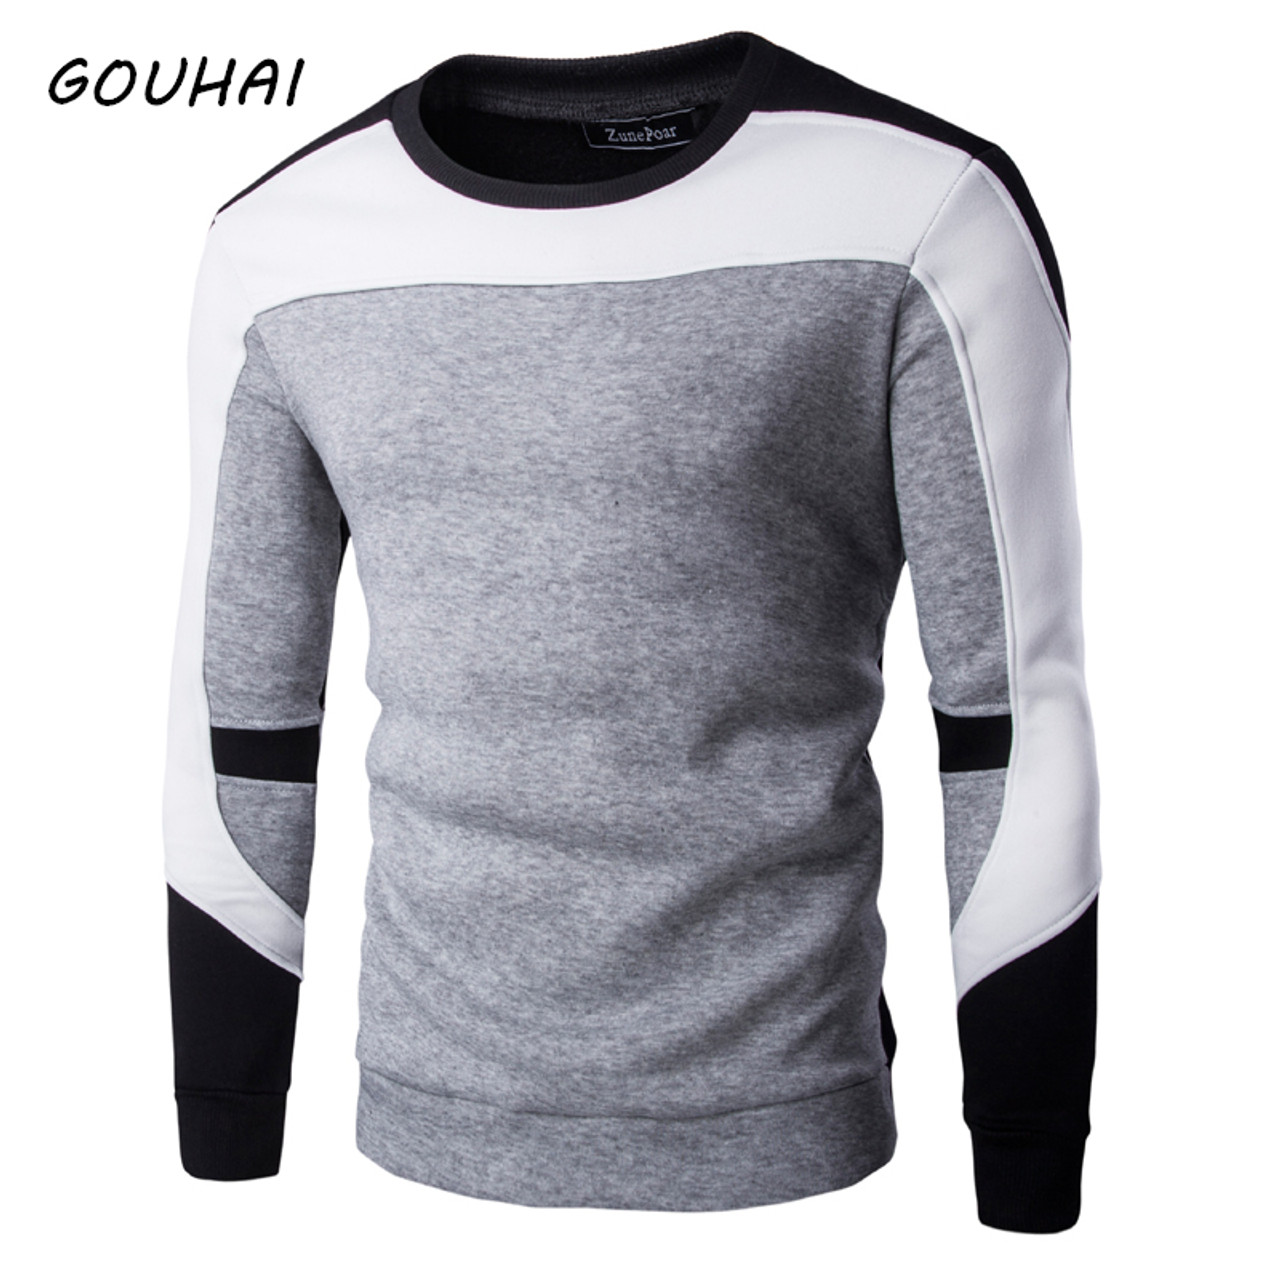 Coersd Man Autumn Spring Patchwork Long Sleeve Hoodies Sweatshirt Blouse Shirt